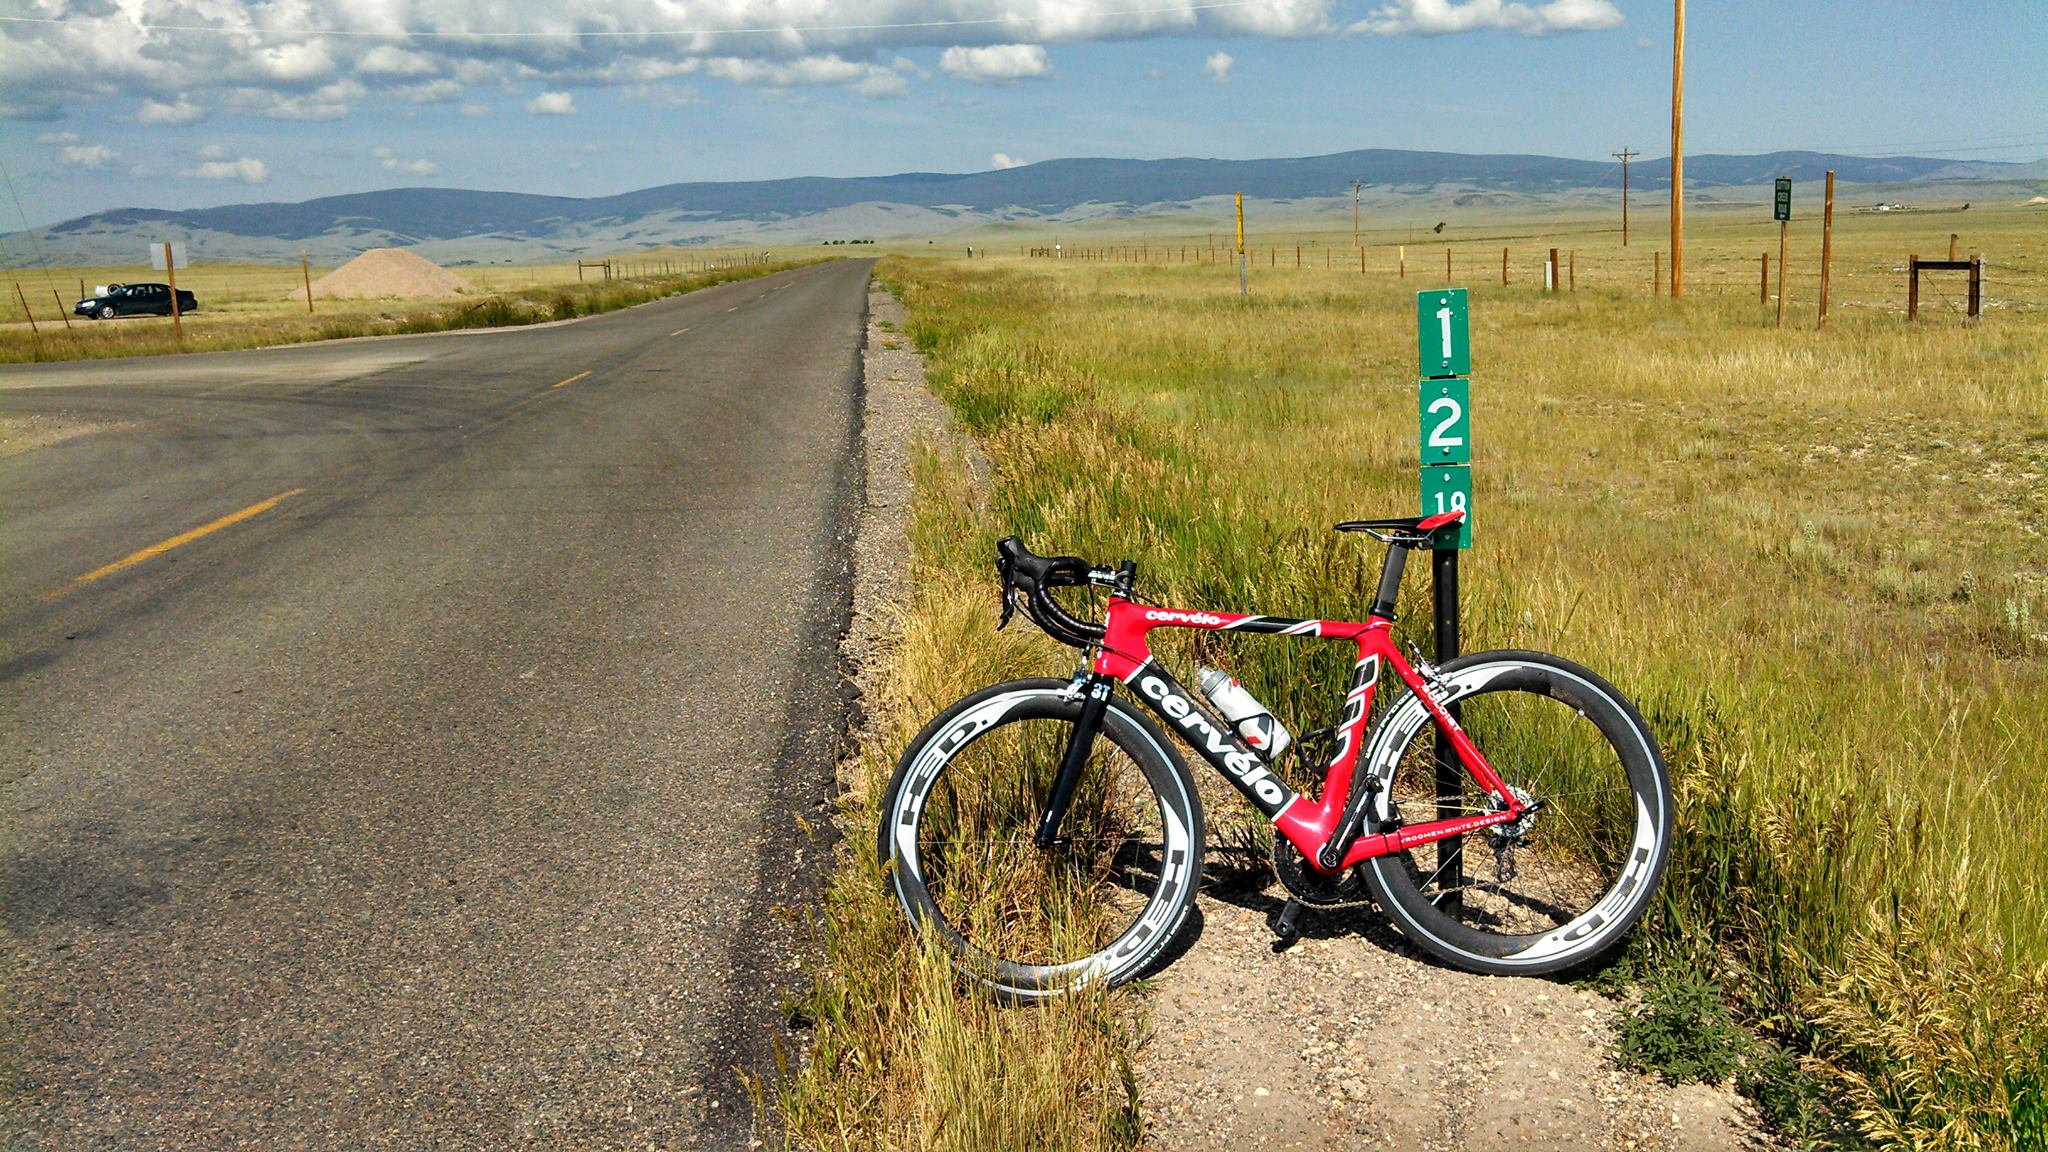 My trusty friend for many long, desolate miles of Wyoming road.